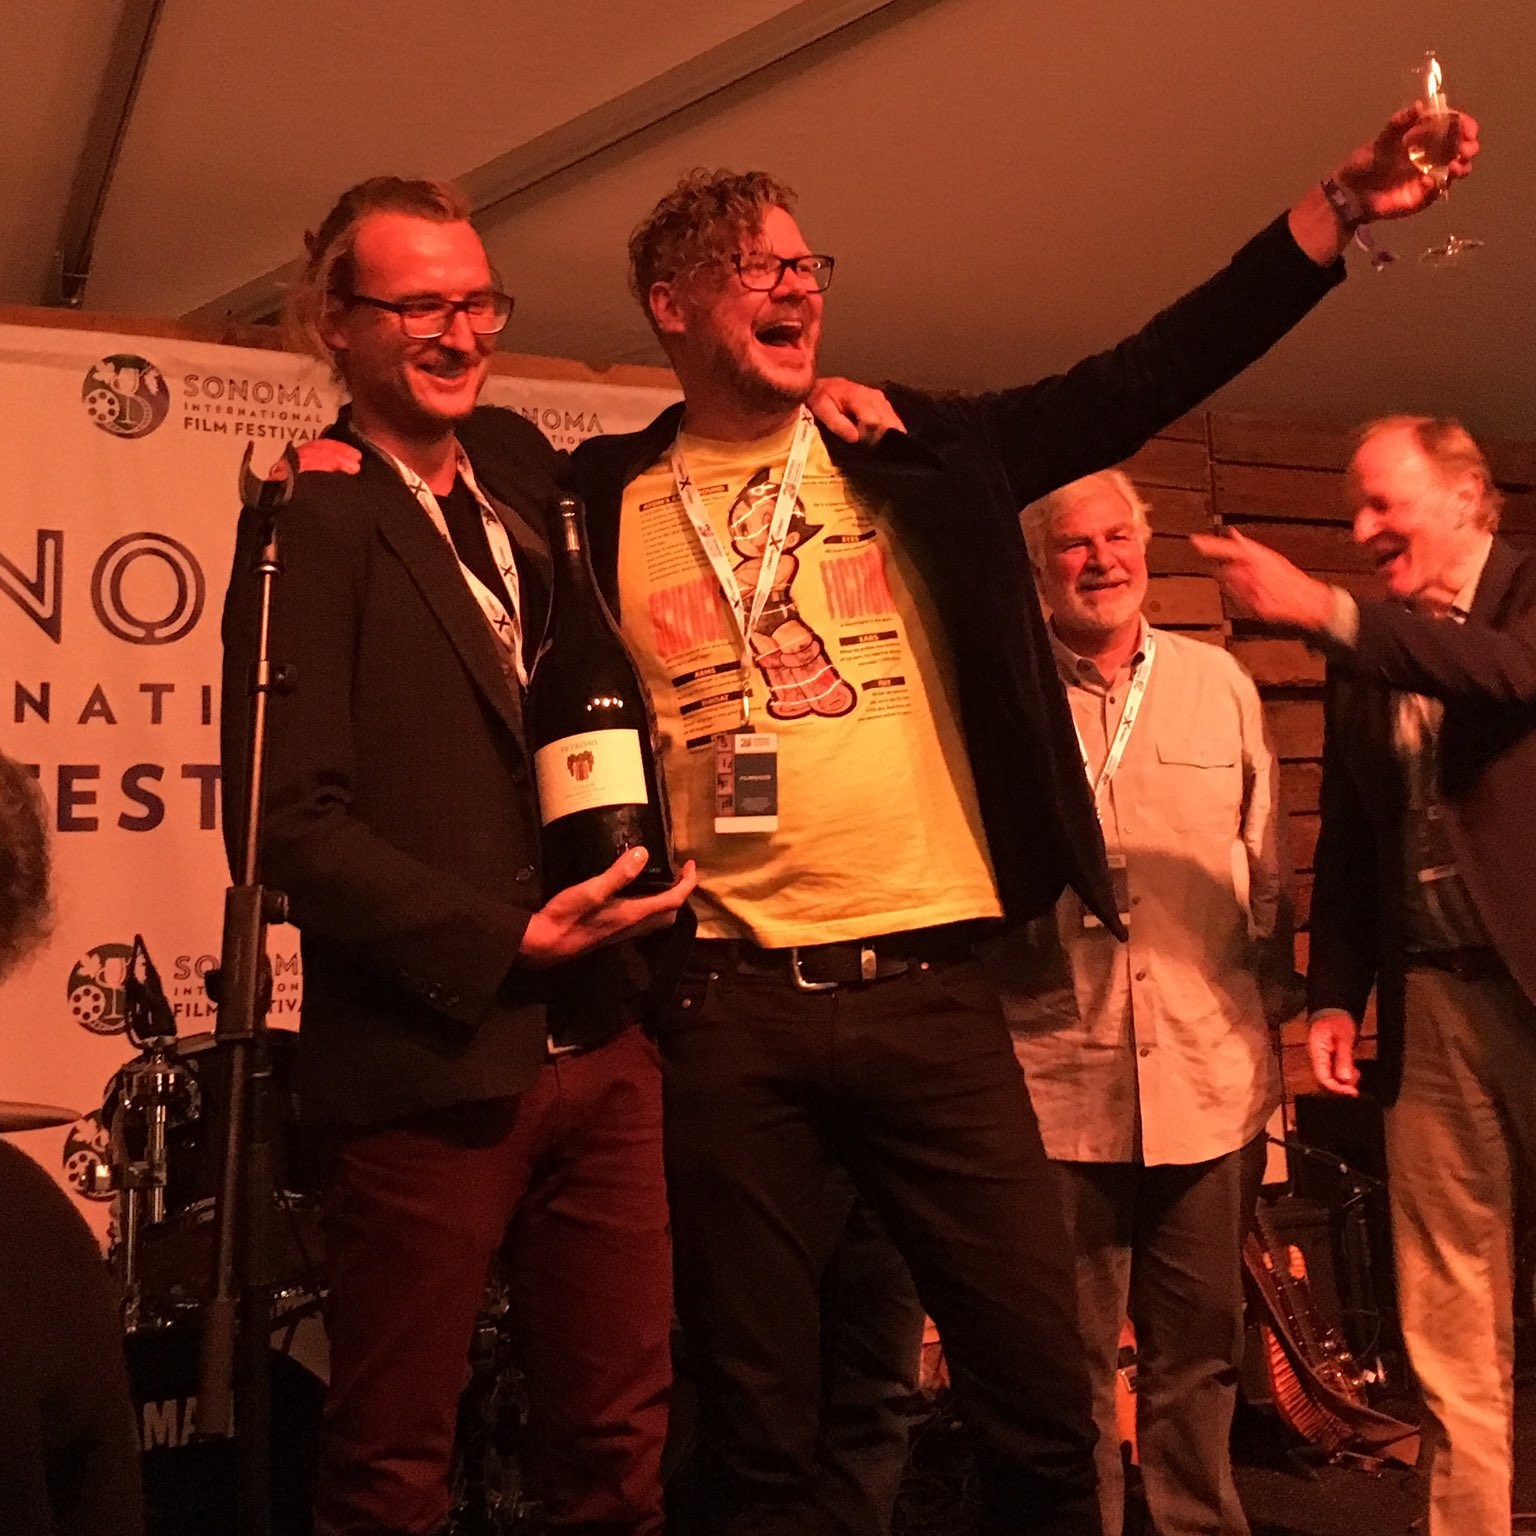 Mikey Hill and Jamie Messenger accept Best Animation Award at Sonoma International Film Festival